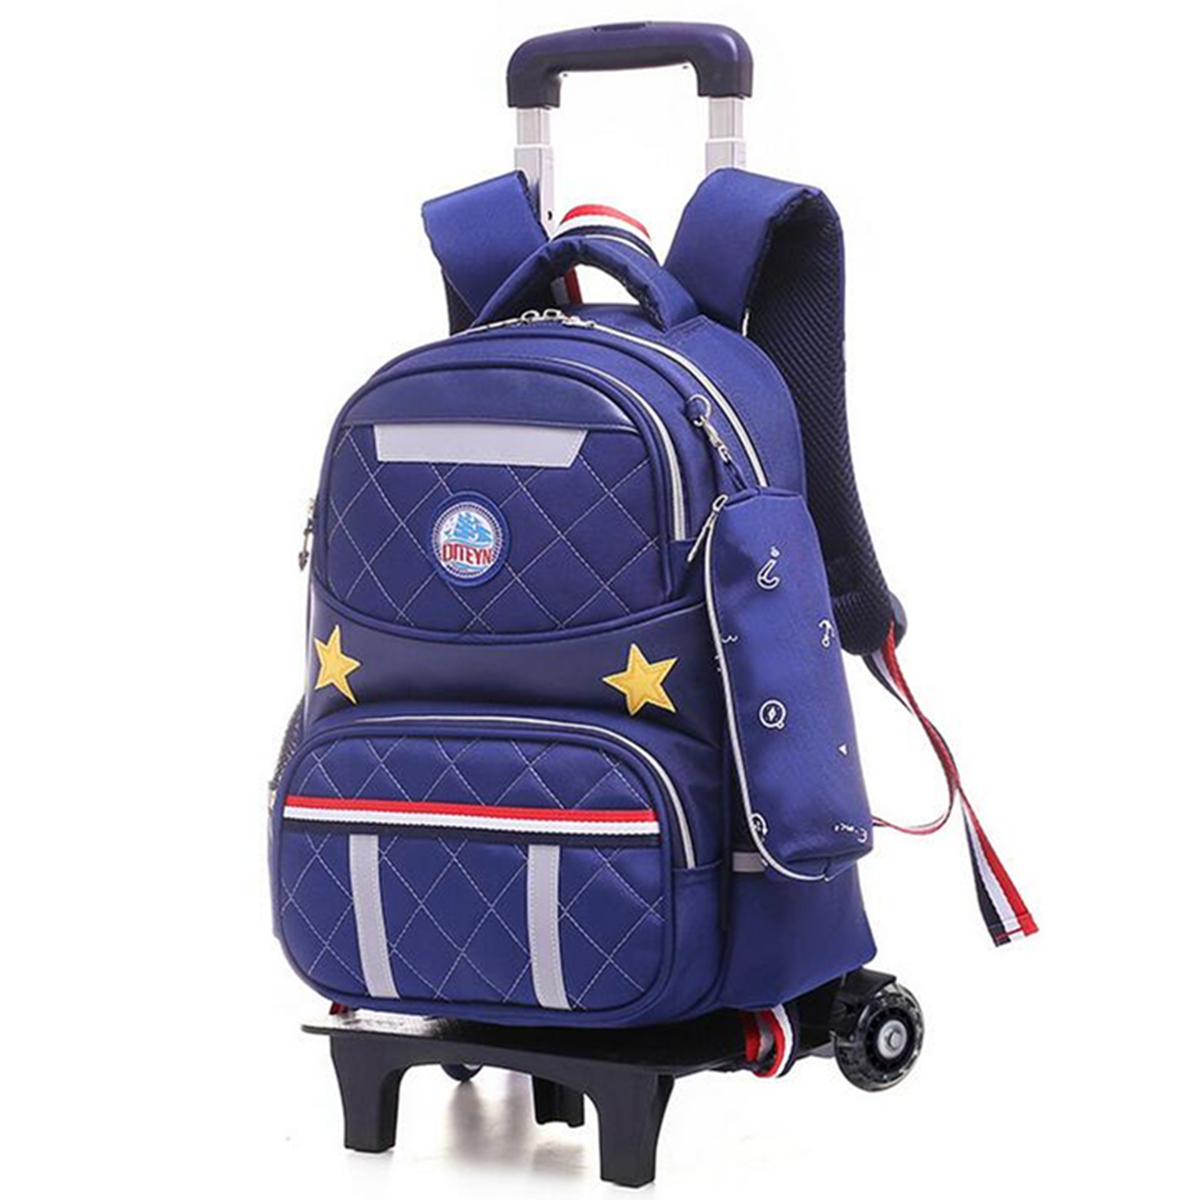 ae4b374cb235 Kids Girls Boys Children Wheels Trolley Backpack Bag School Luggage ...